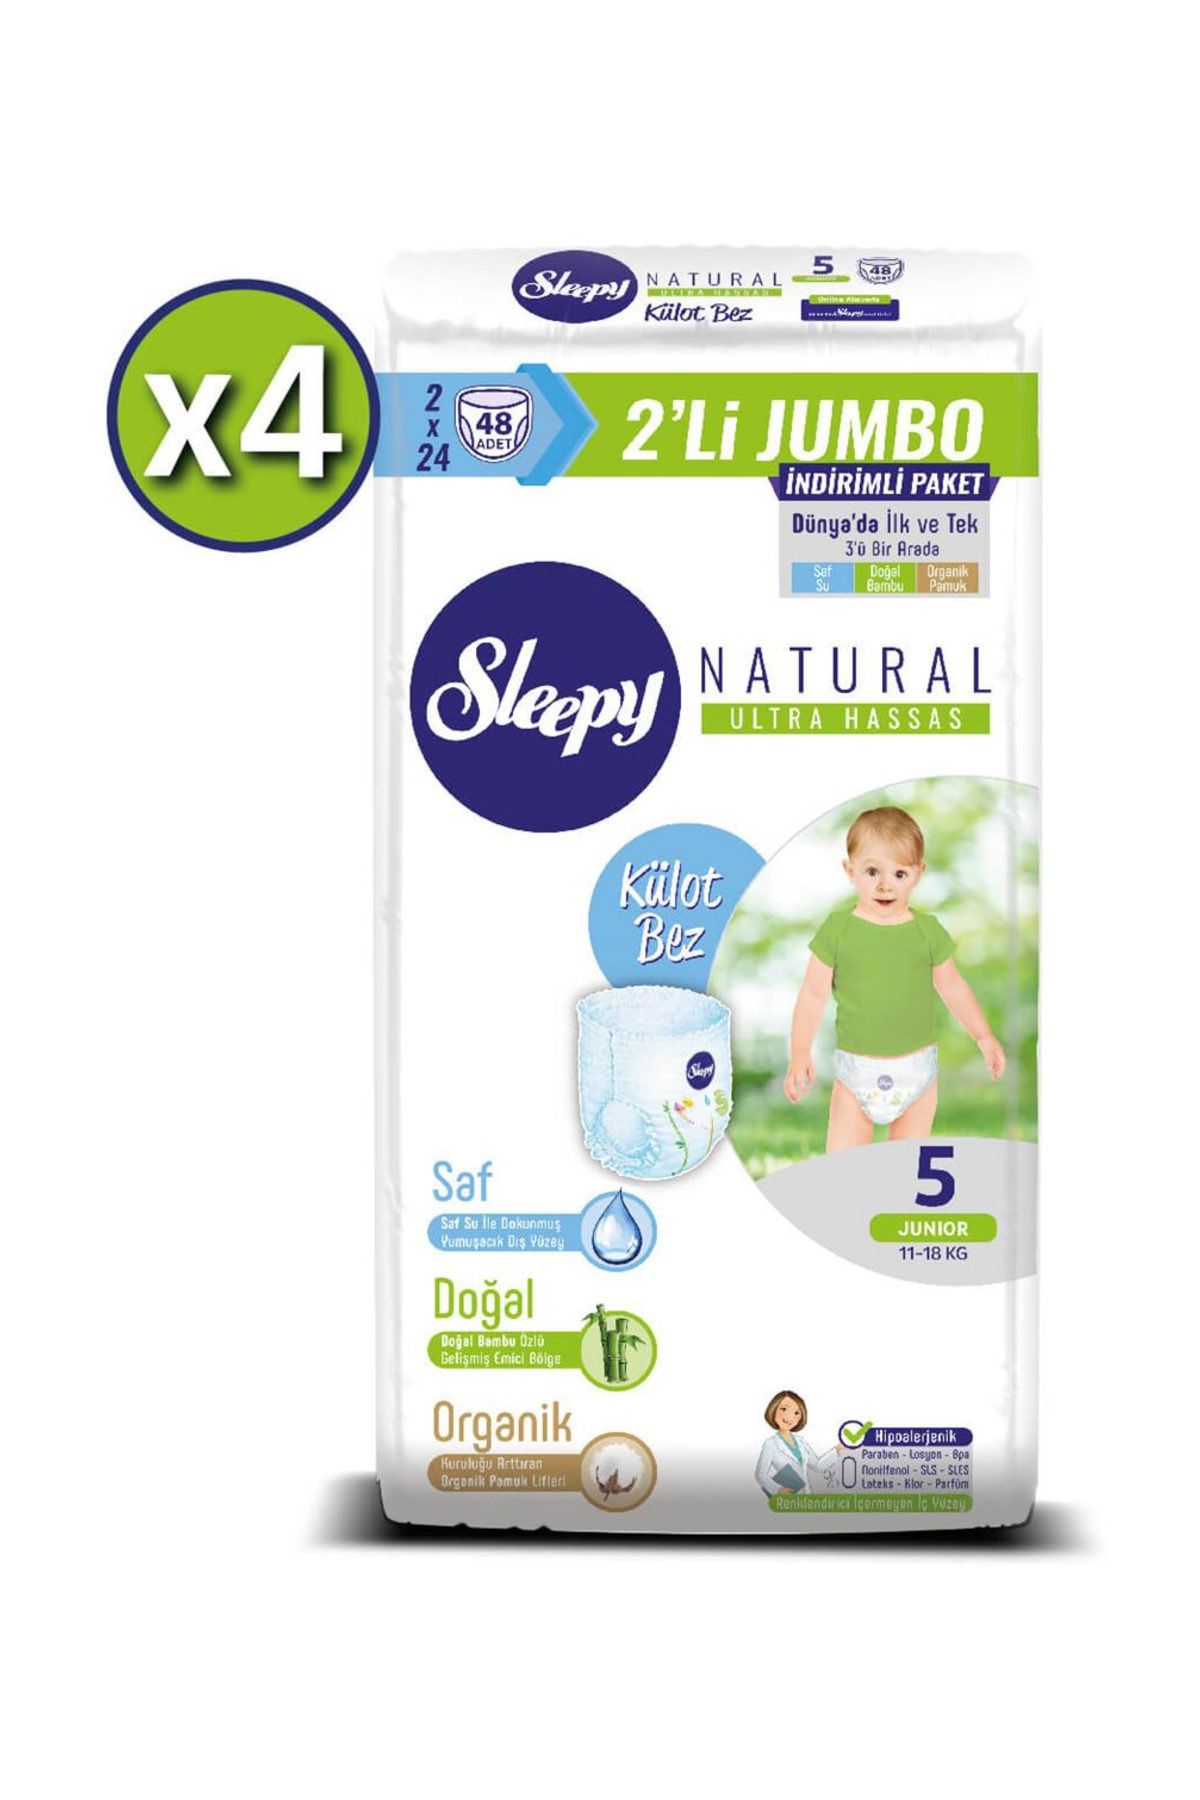 Sleepy Natural Külot Bez 5 Beden Junior 4X2'li Jumbo 192 Adet 2